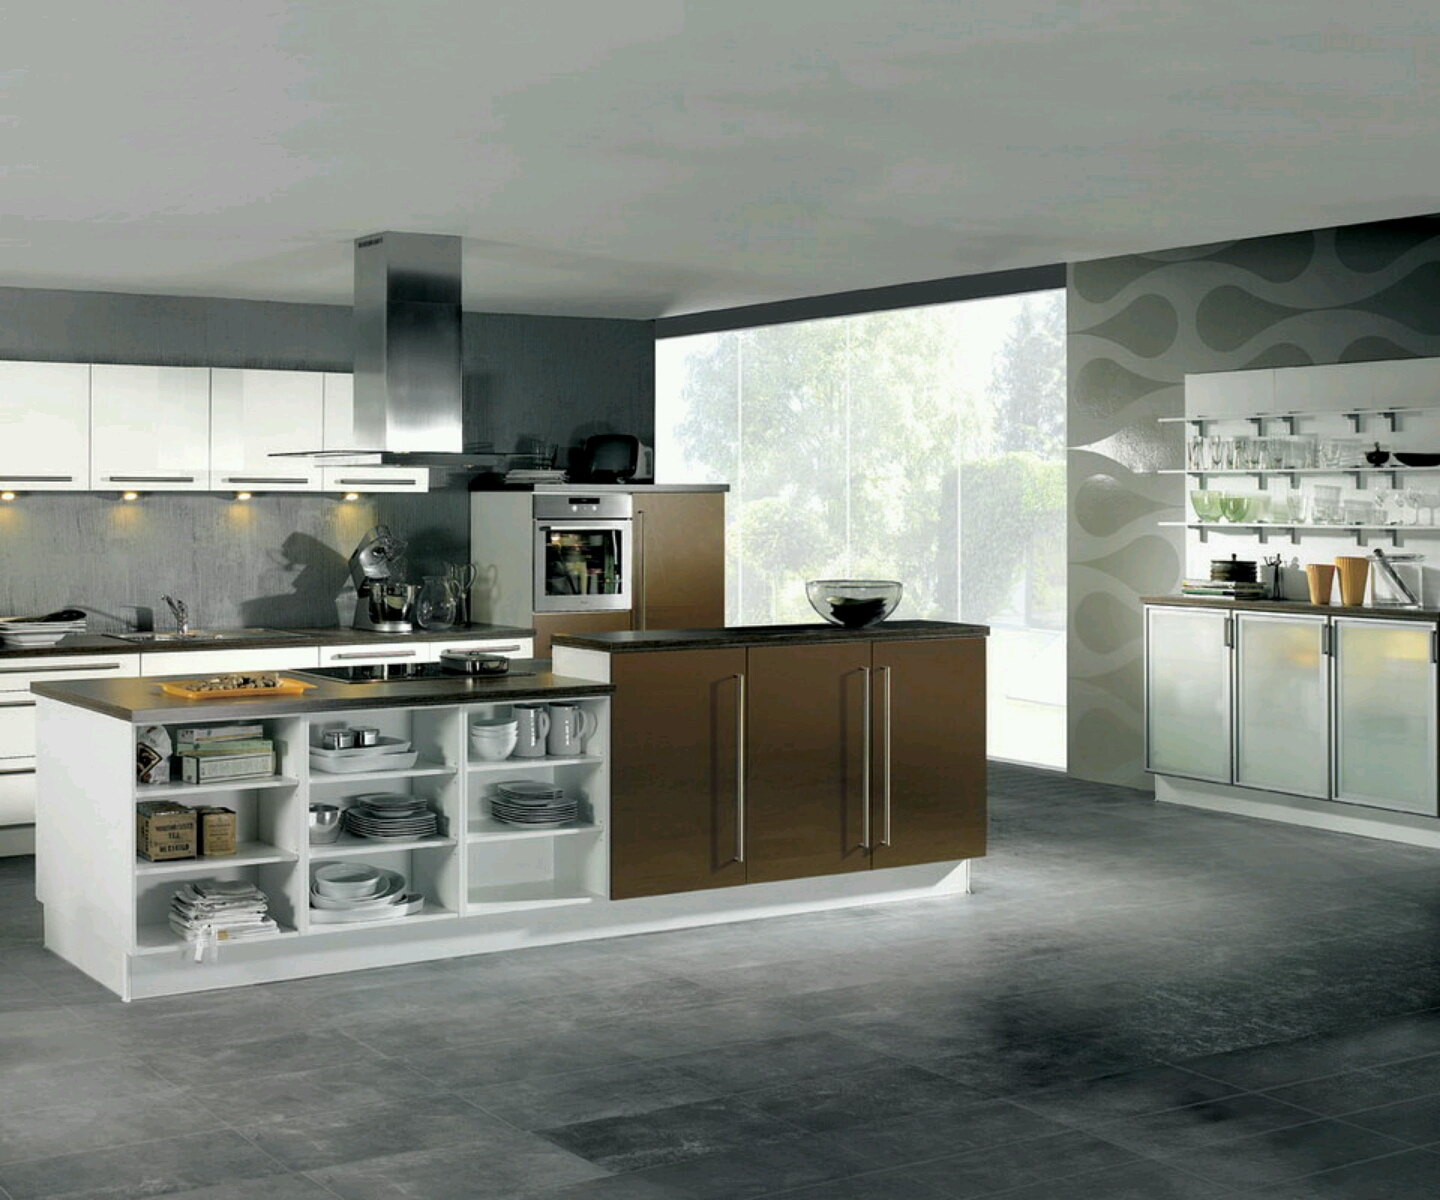 Ultra modern kitchen designs ideas modern home designs for House design kitchen ideas